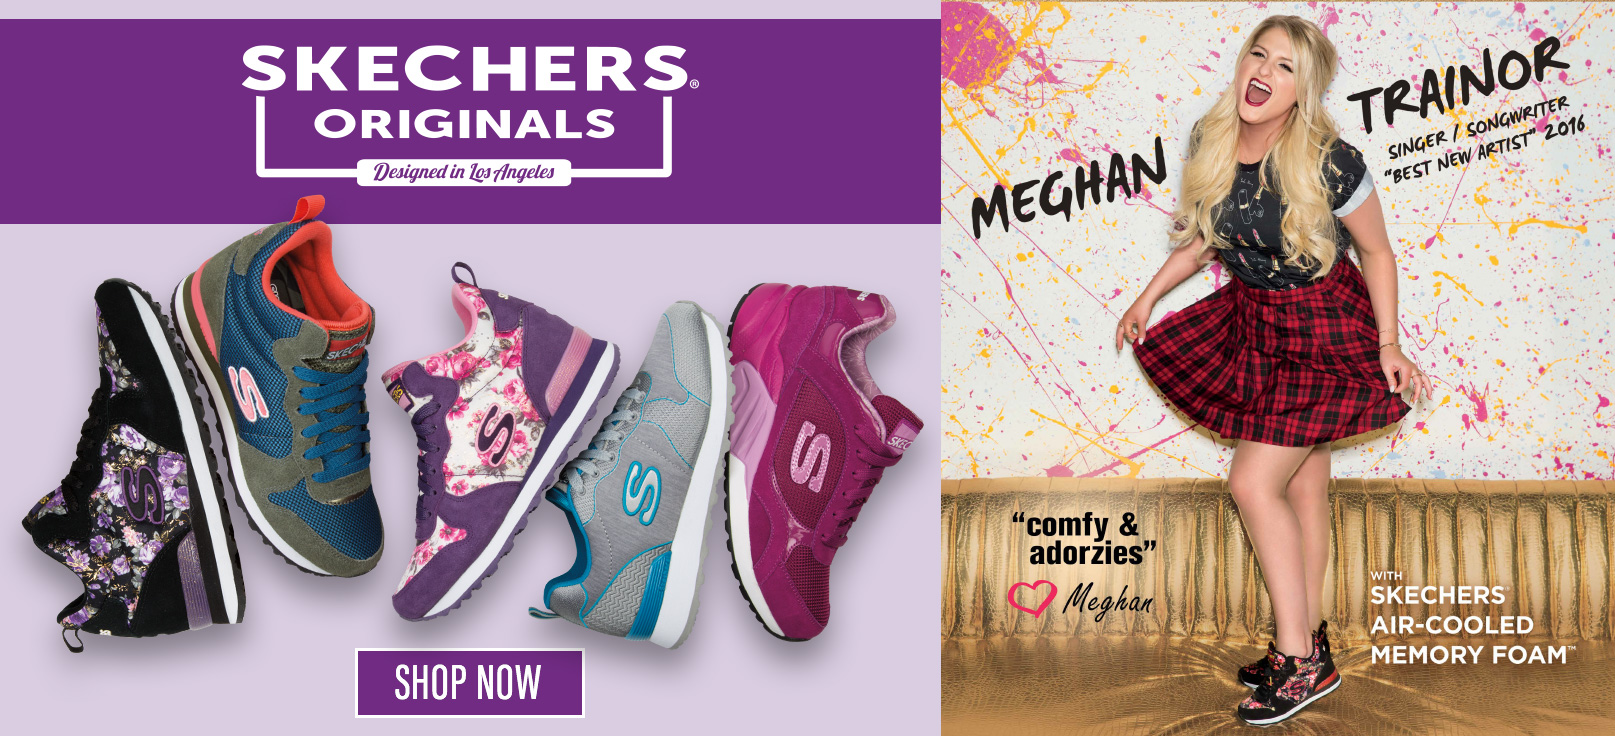 Shop for Women's Skechers Shoes, Sandals and Sneakers including Skechers Originals sport sneakers worn by Meghan Trainor.  Largest selection online.